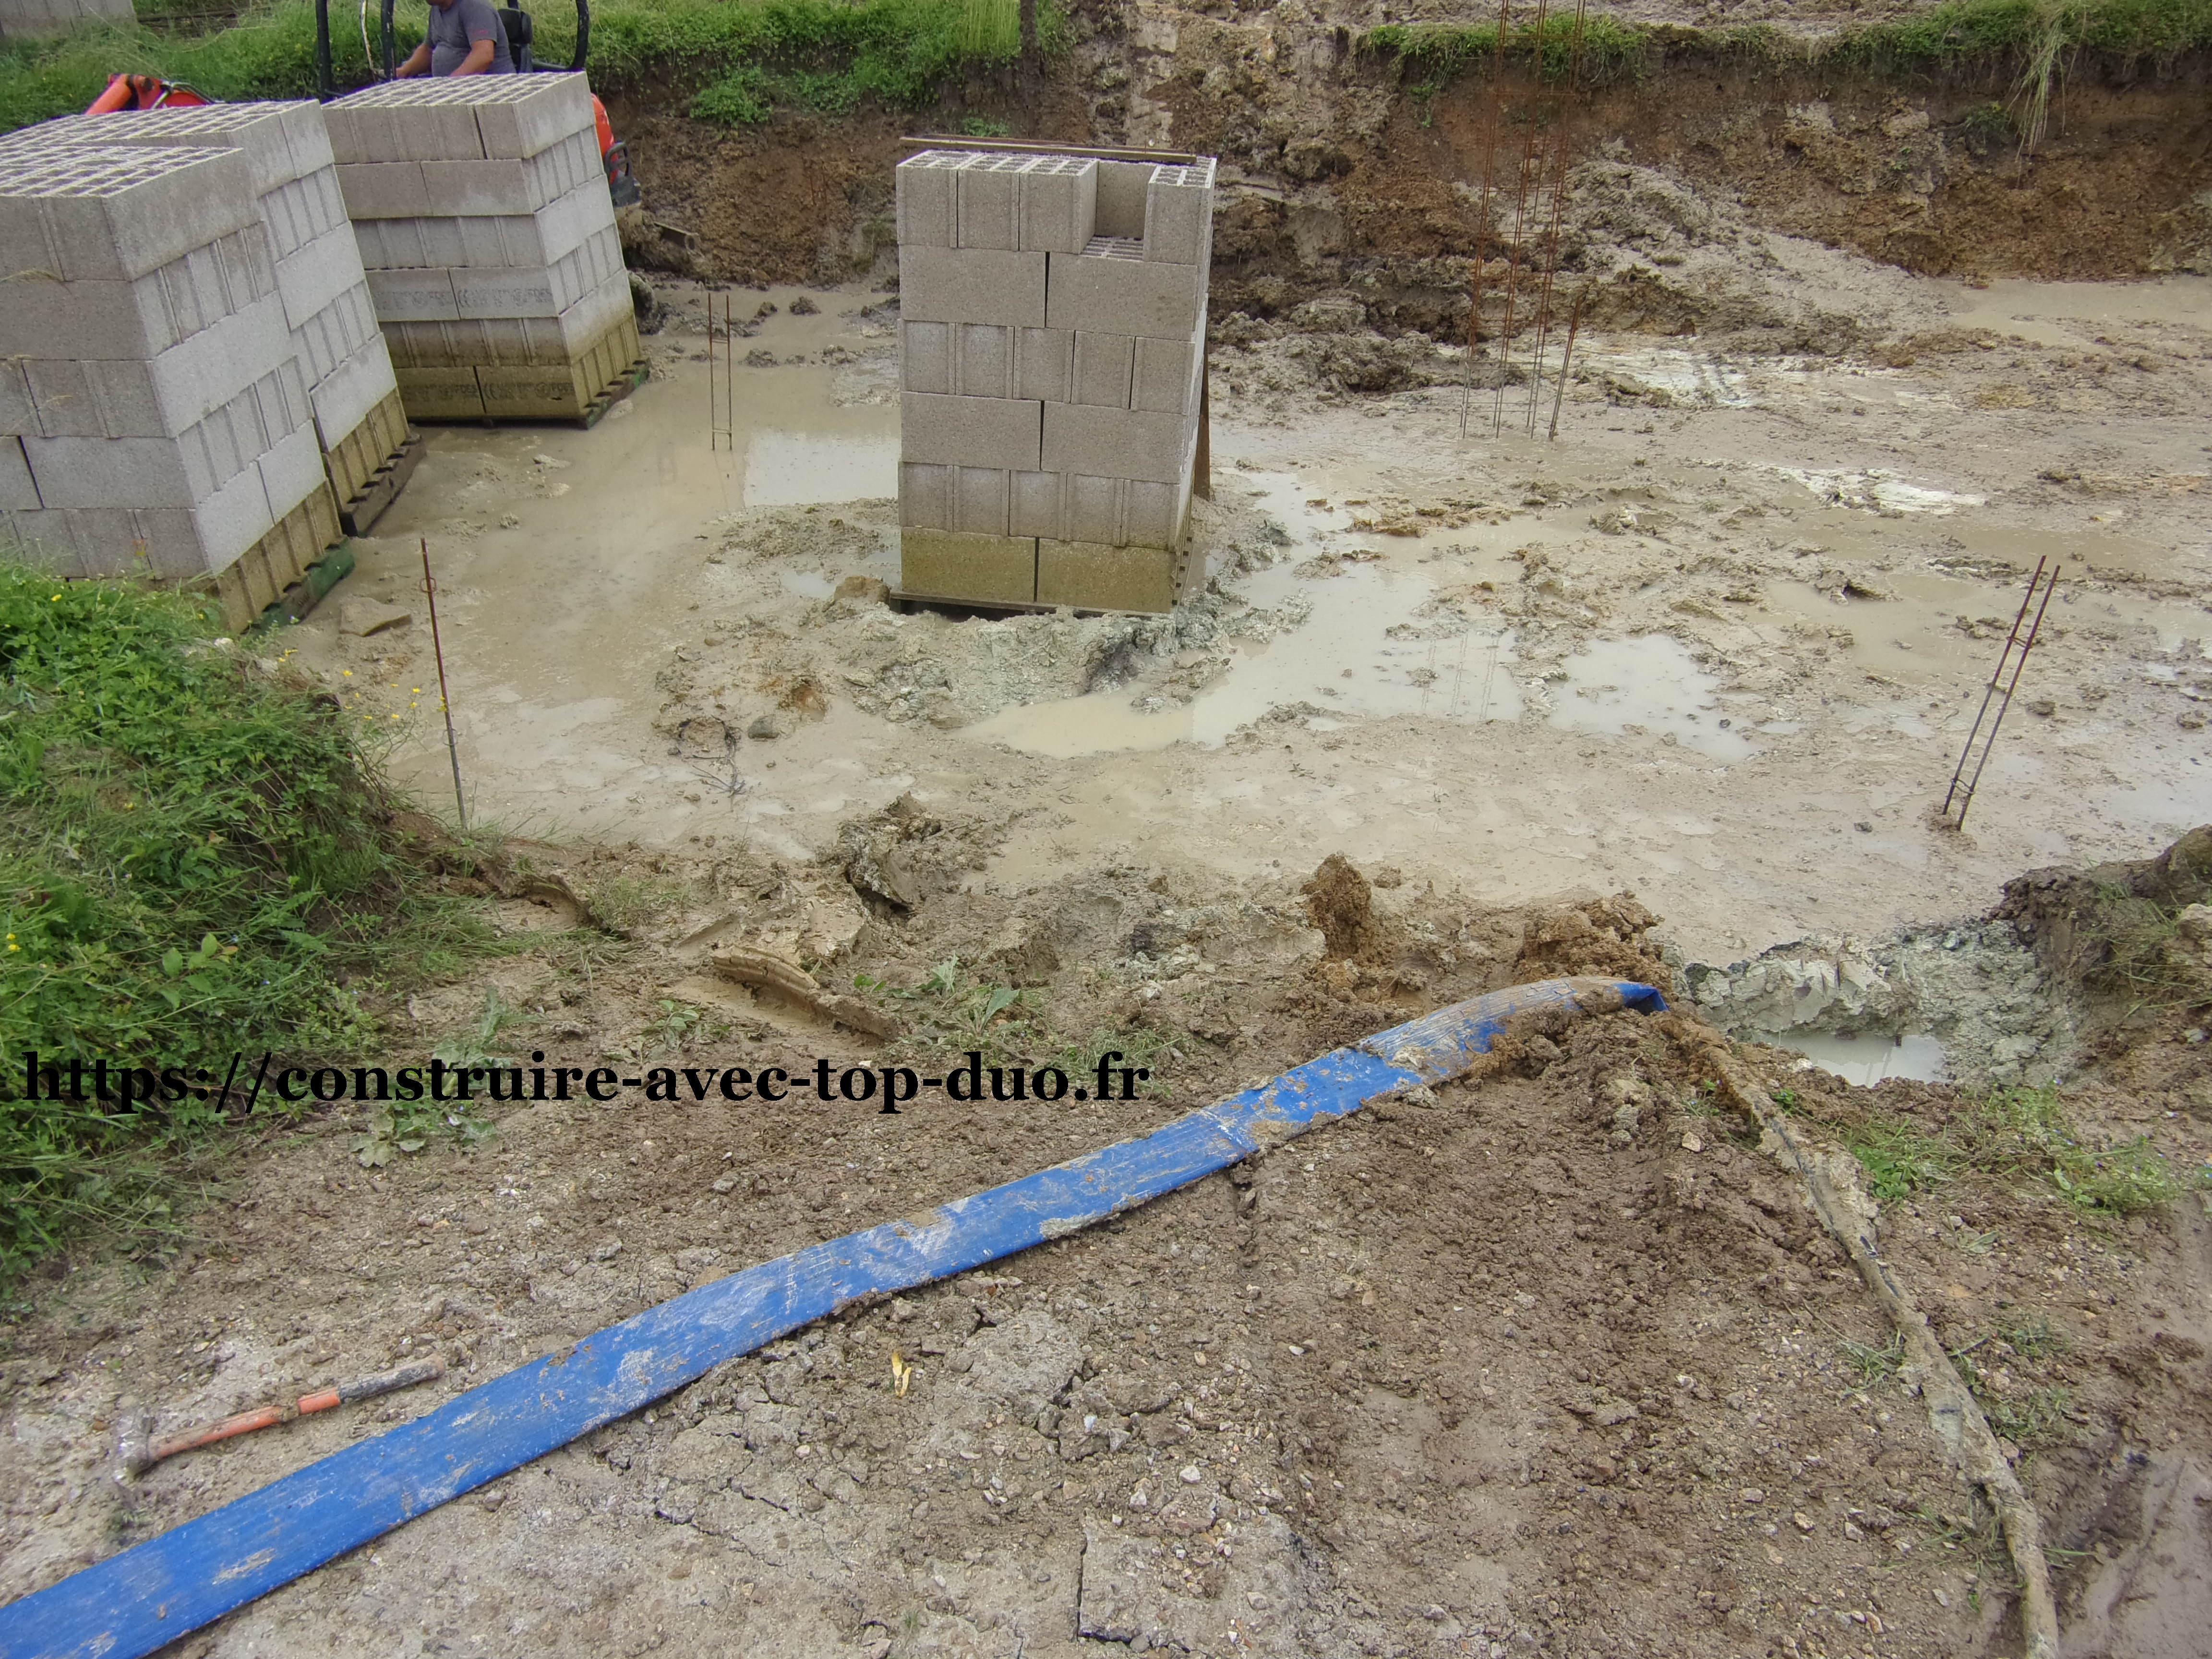 Chantier TOP DUO pompage  de l'eau